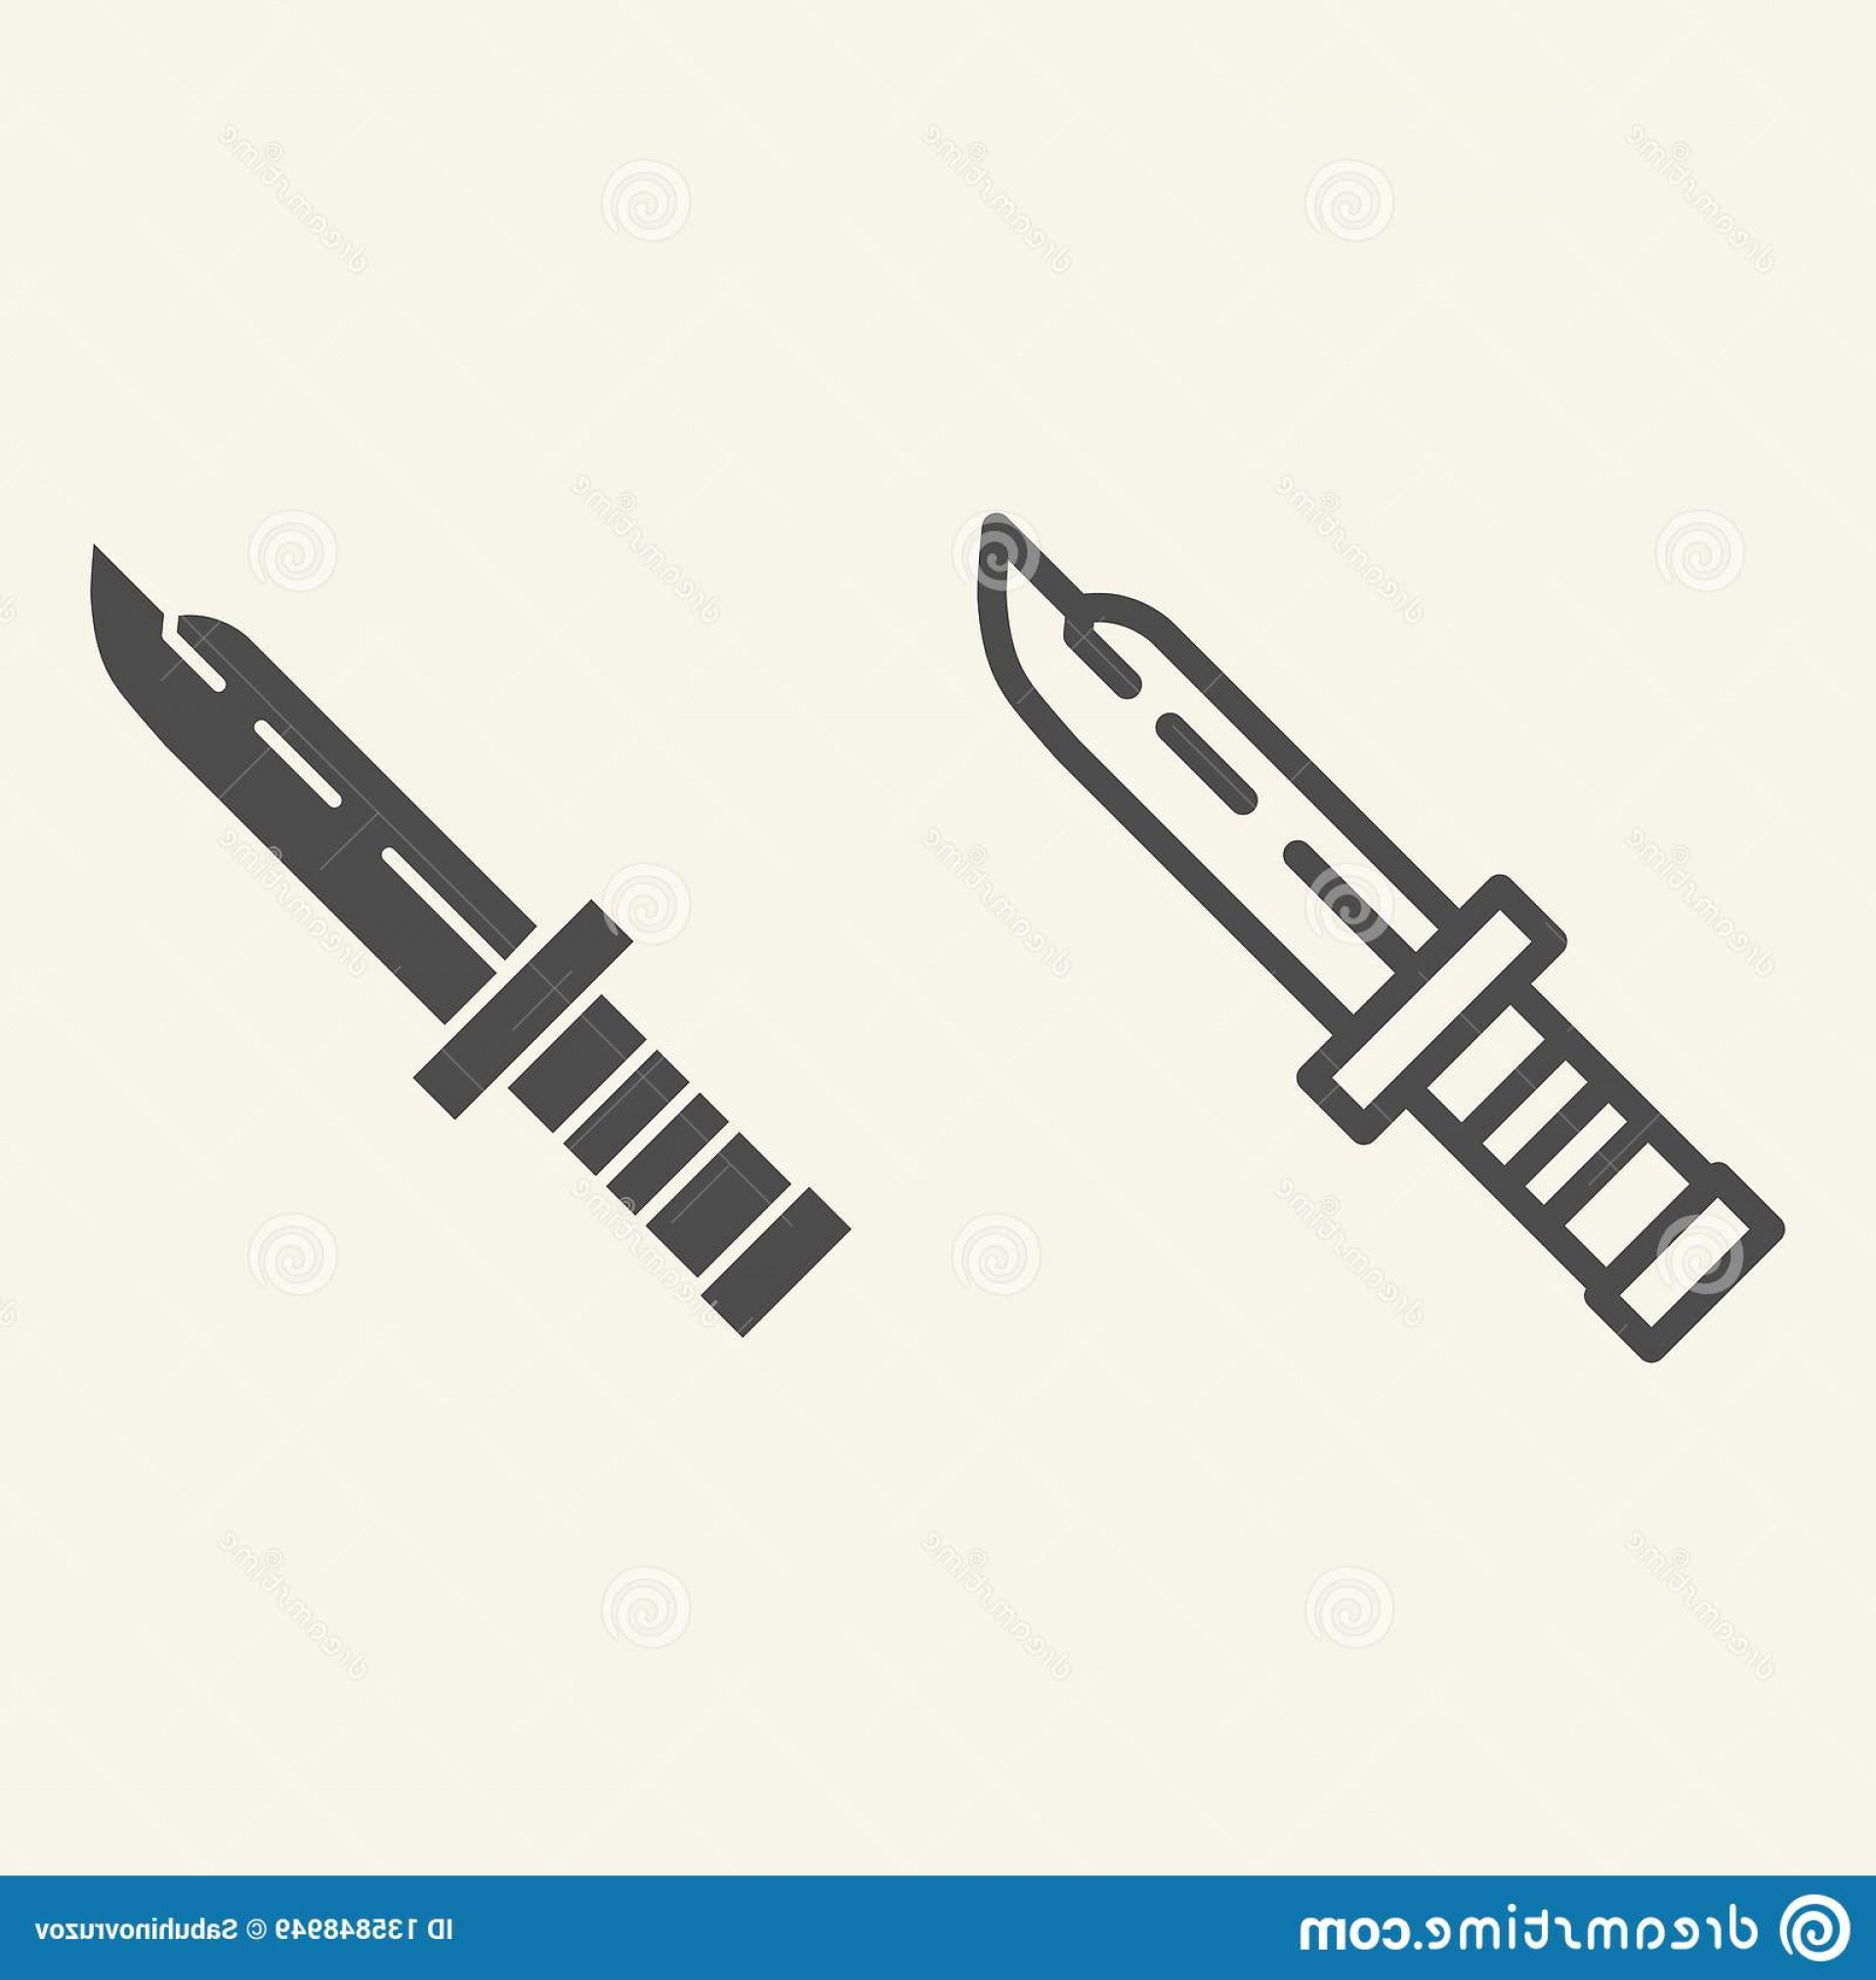 Vector Army Knife: Army Knife Line Glyph Icon Military Knife Vector Illustration Isolated White Dagger Outline Style Design Army Knife Line Image